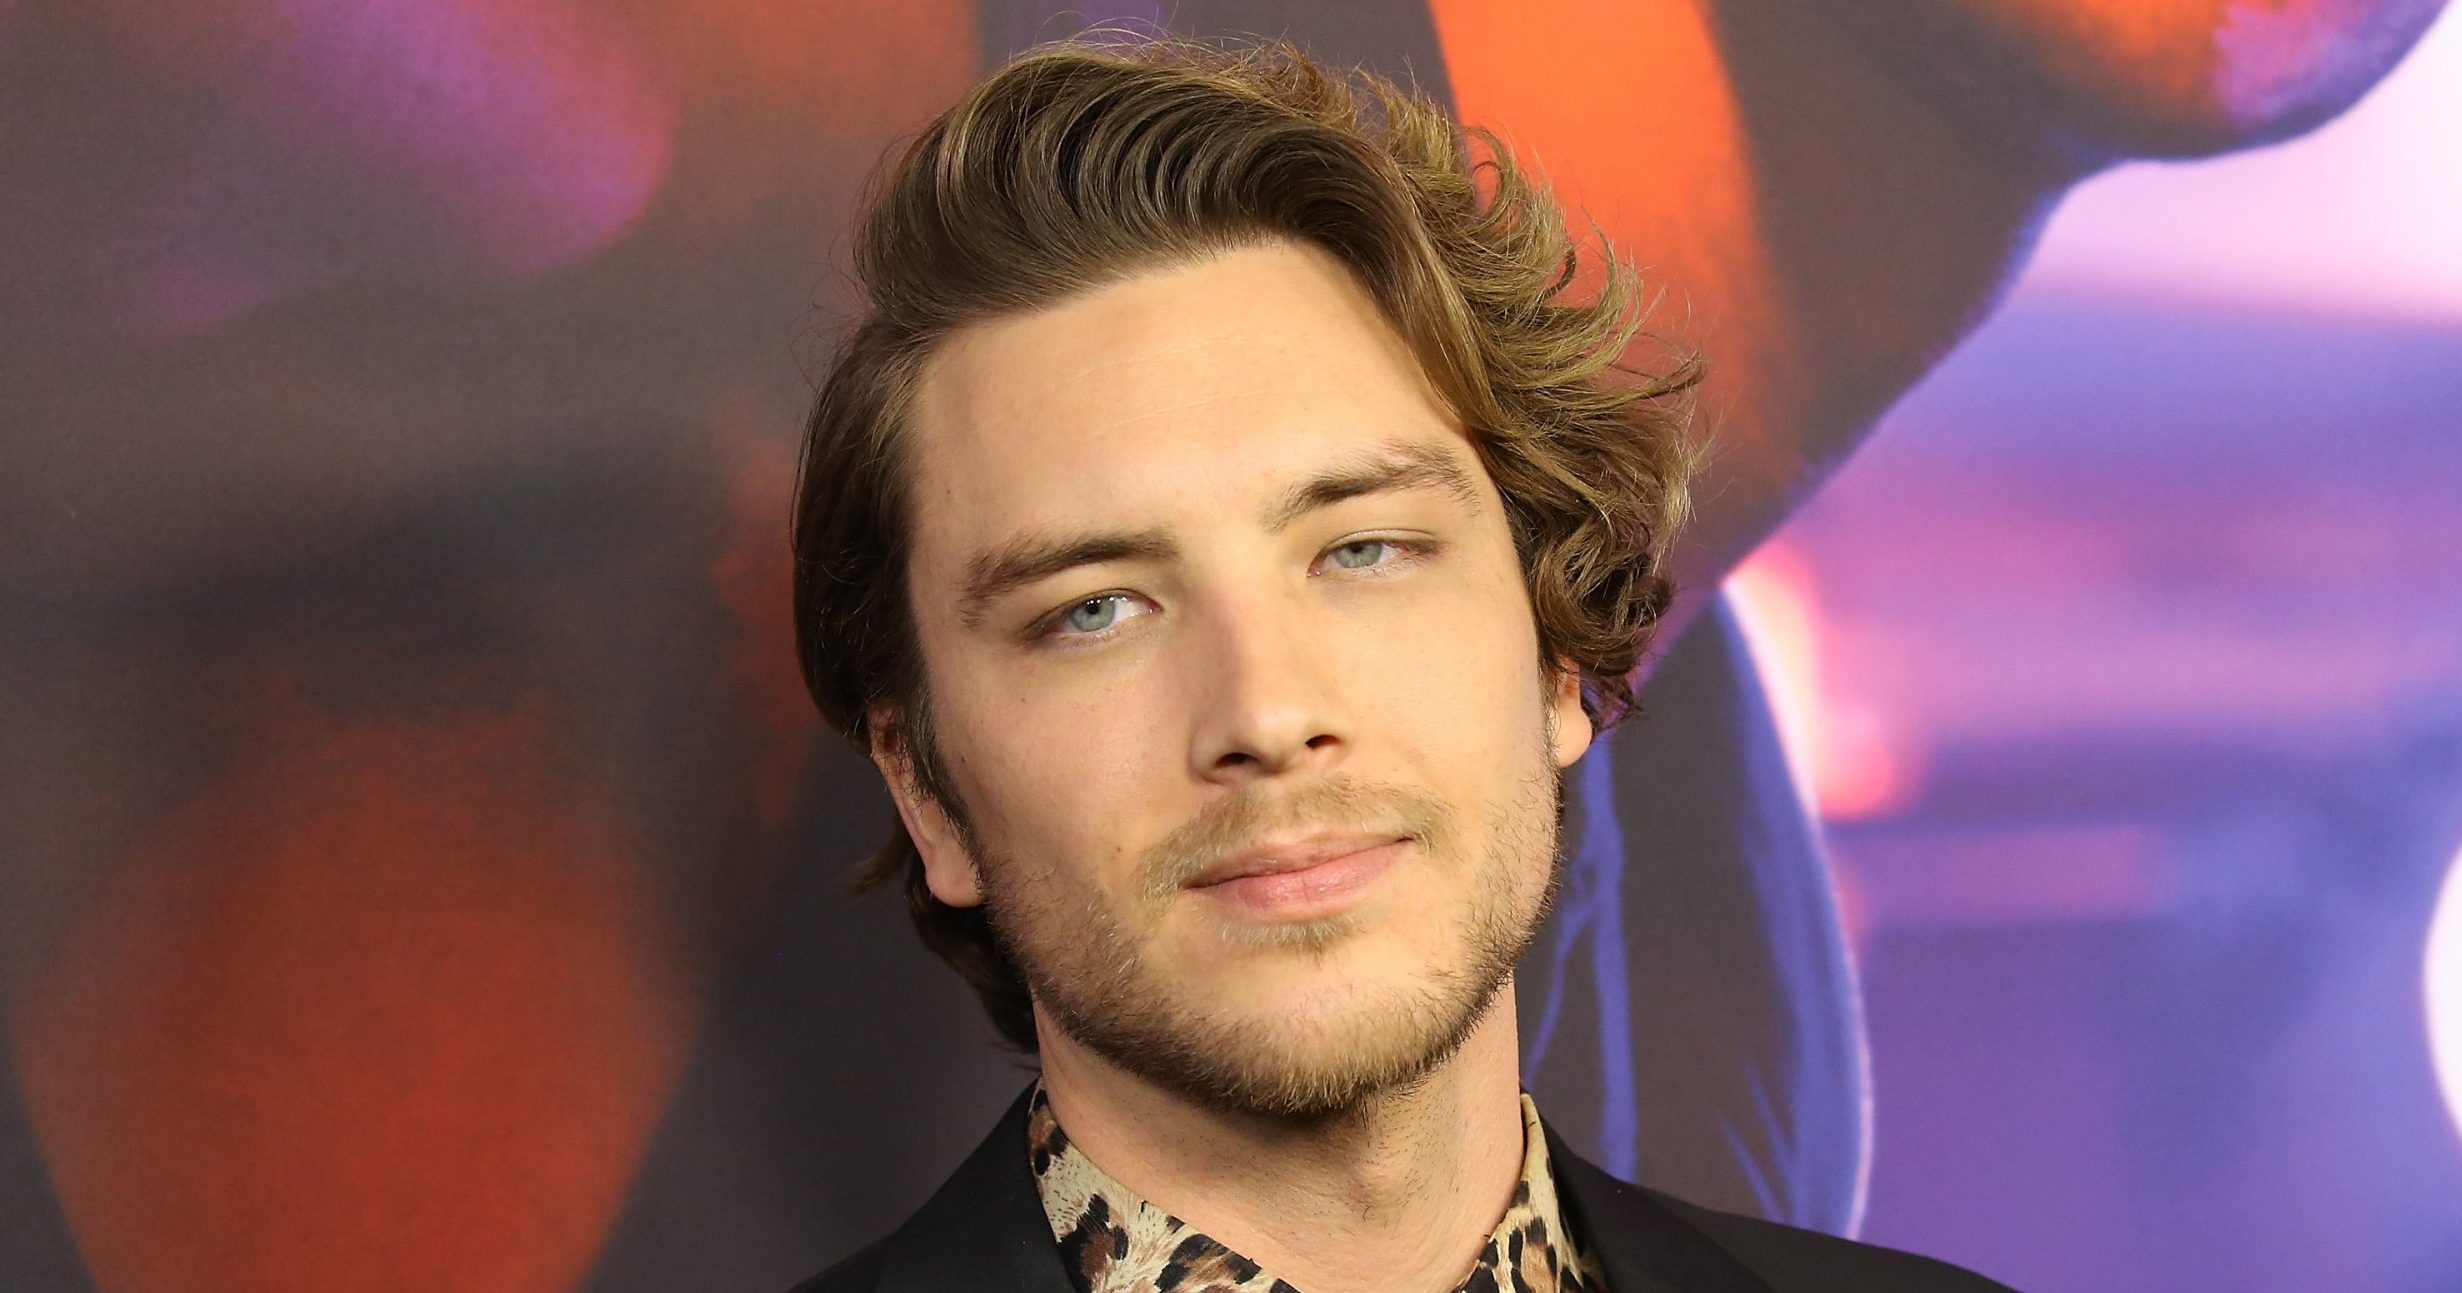 """LOS ANGELES, CA - MARCH 19: Cody Fern arrives at the for your consideration event for FX's """"The Assassination Of Gianni Versace: American Crime Story"""" held at DGA Theater on March 19, 2018 in Los Angeles, California. (Photo by Michael Tran/FilmMagic)"""